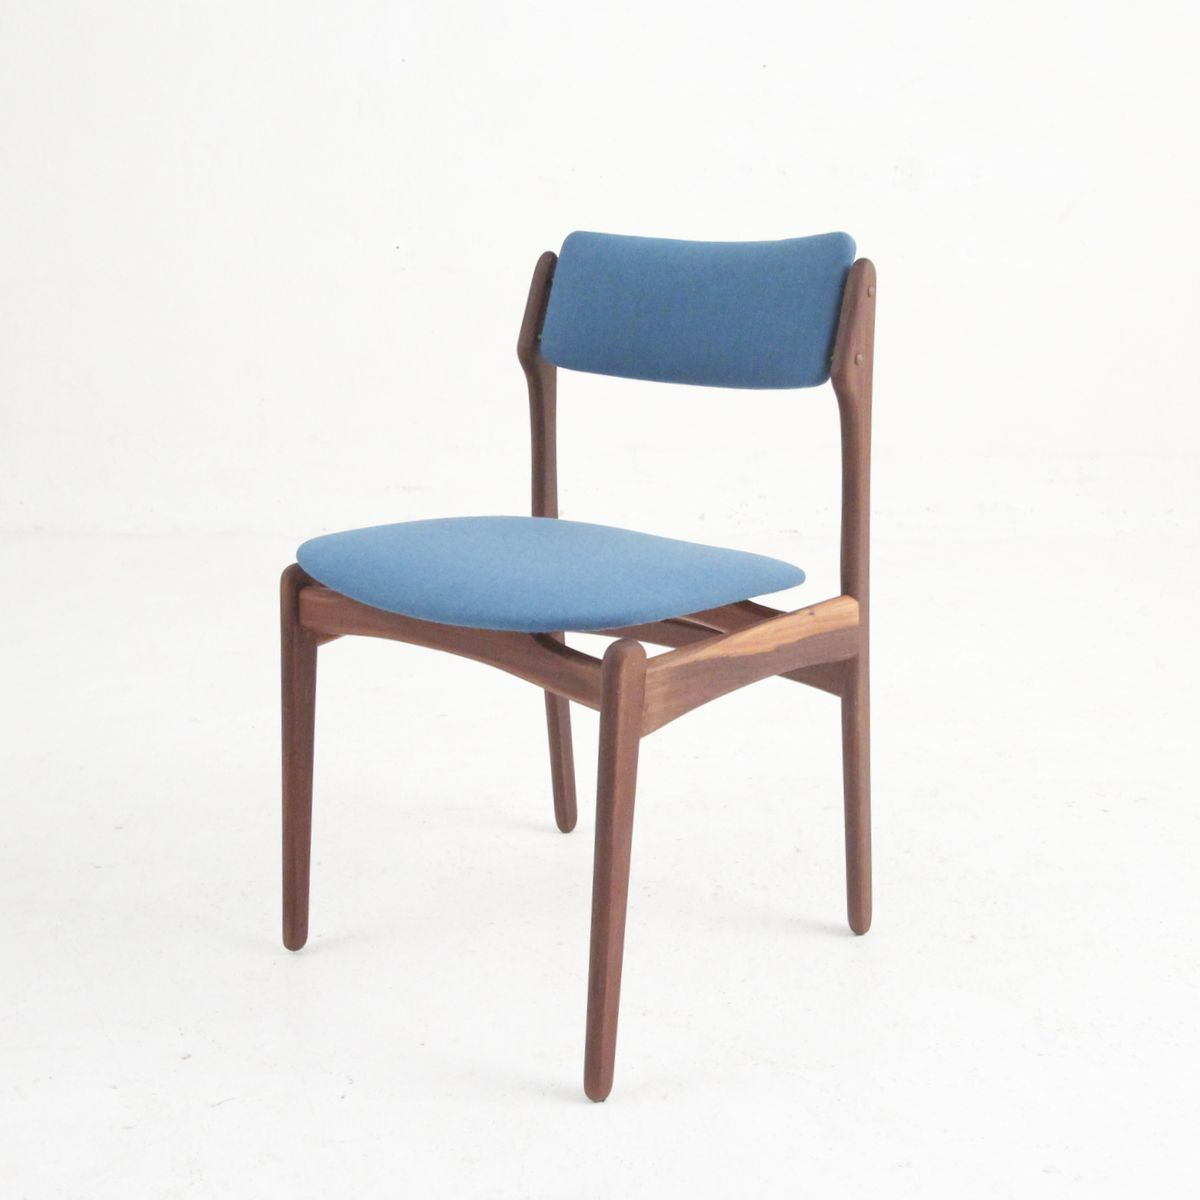 Danish Modern Dining Chairs: Vintage Danish Modern Dining Chairs In Rosewood, Set Of 4